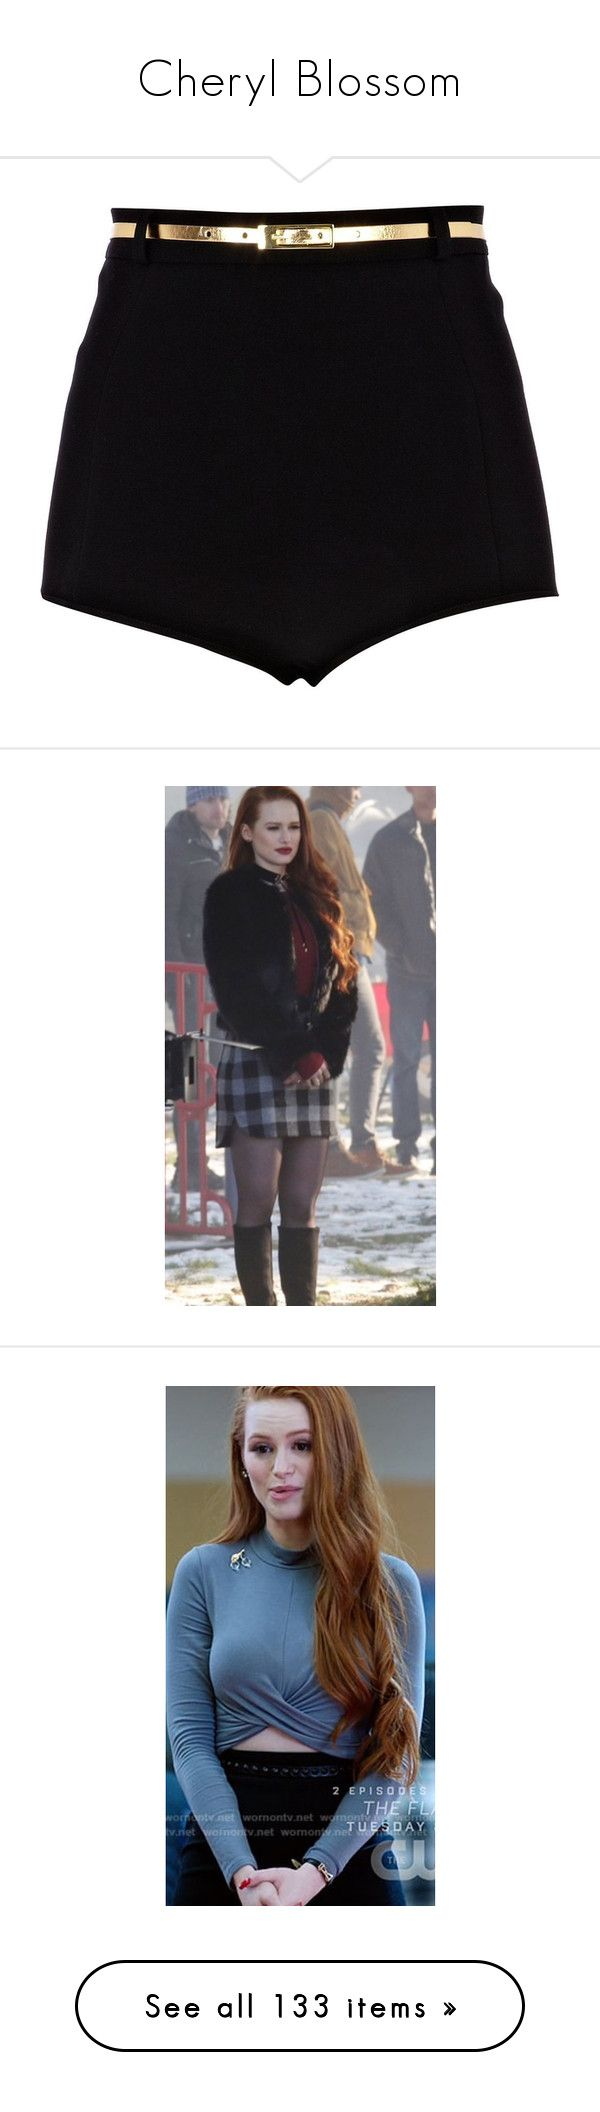 """""""Cheryl Blossom"""" by rebellious-ingenue ❤ liked on Polyvore featuring shorts, bottoms, pants, short, high rise shorts, river island, party shorts, high-rise shorts, high-waisted shorts and dresses"""